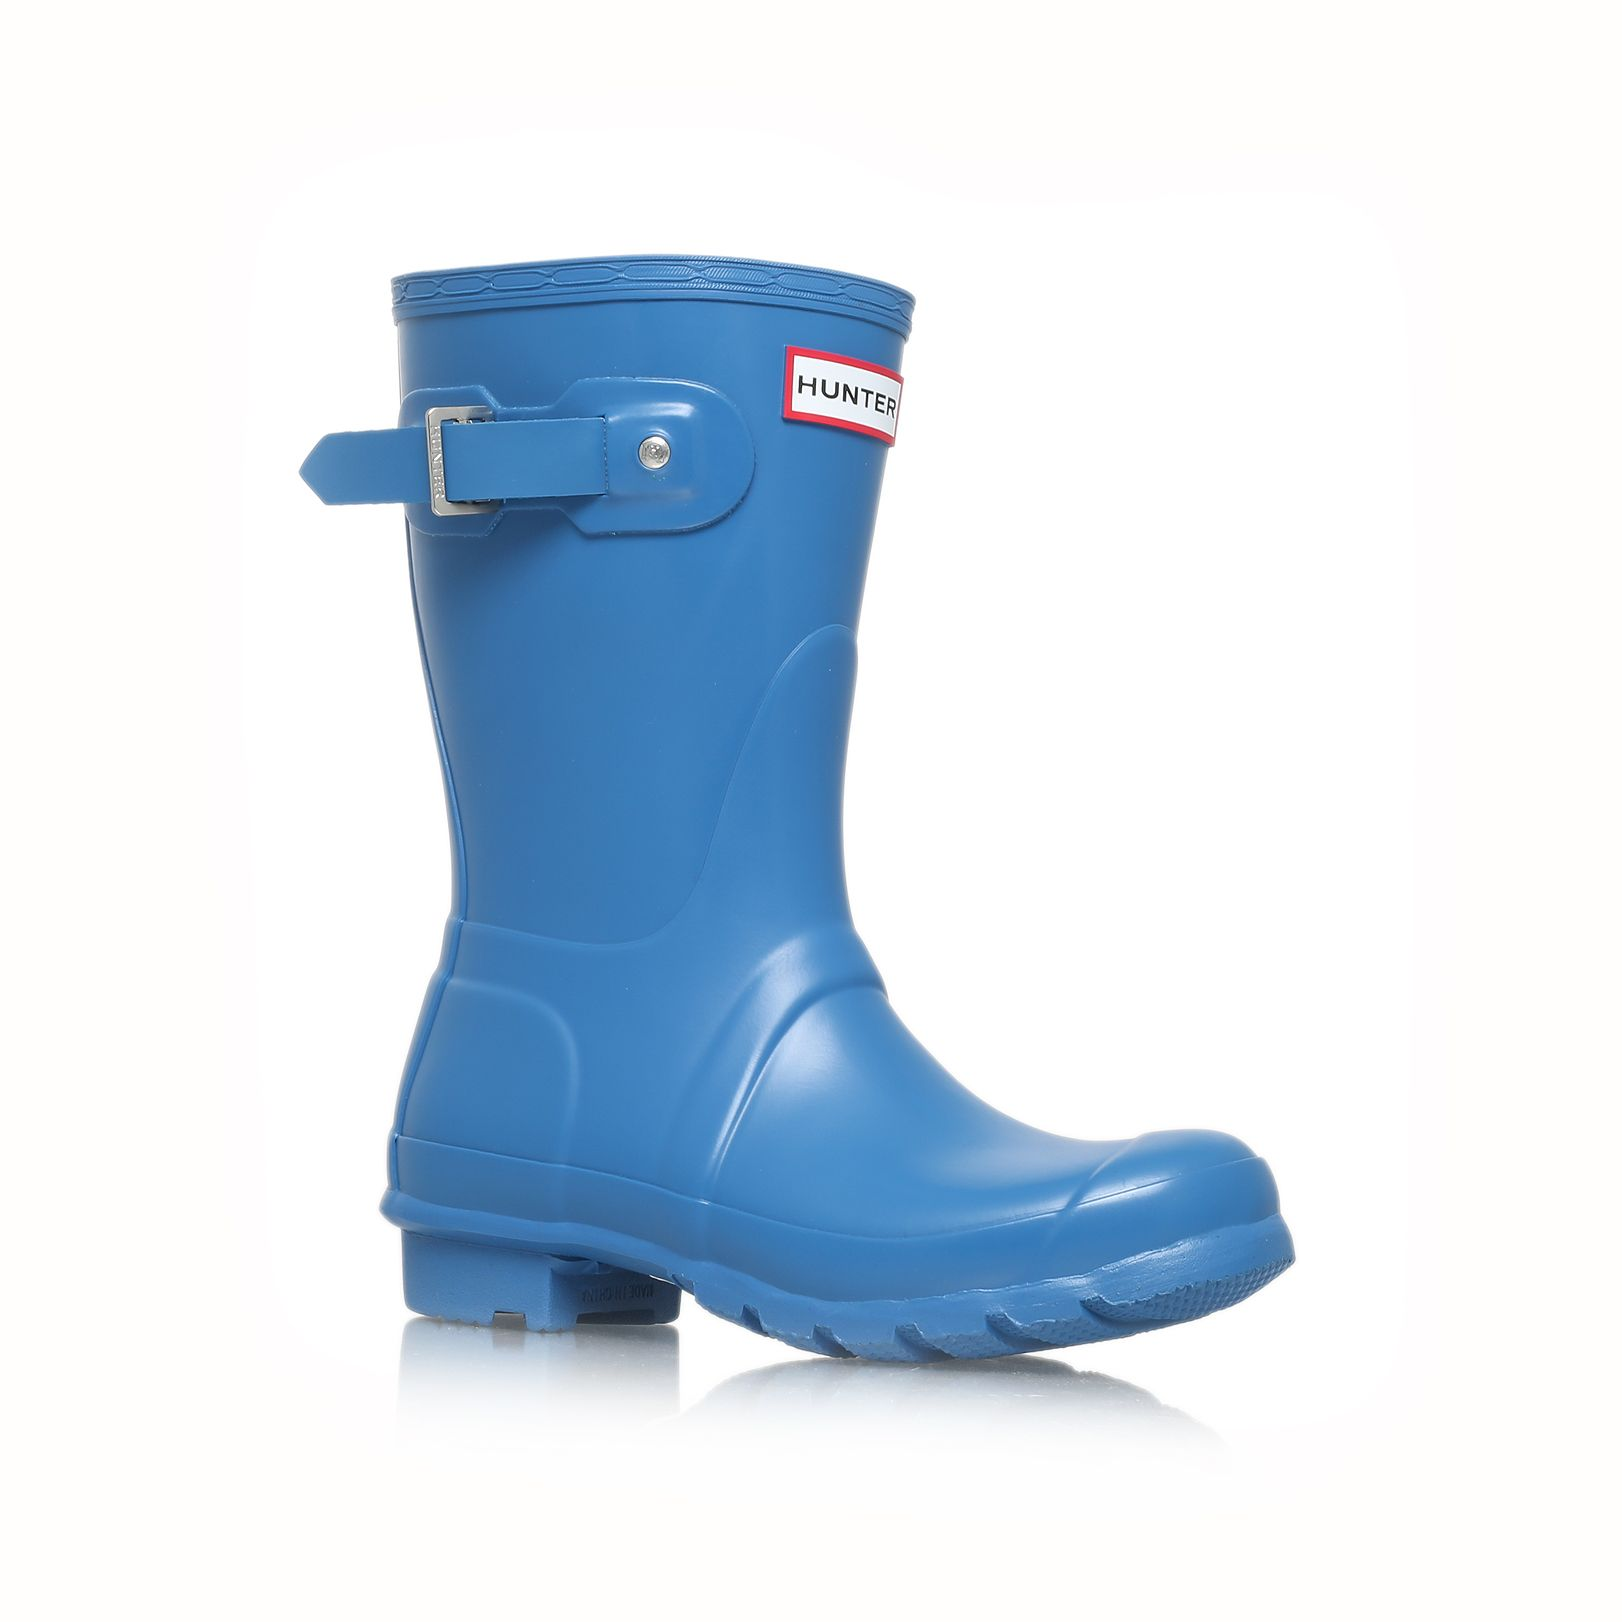 Short wellington boot